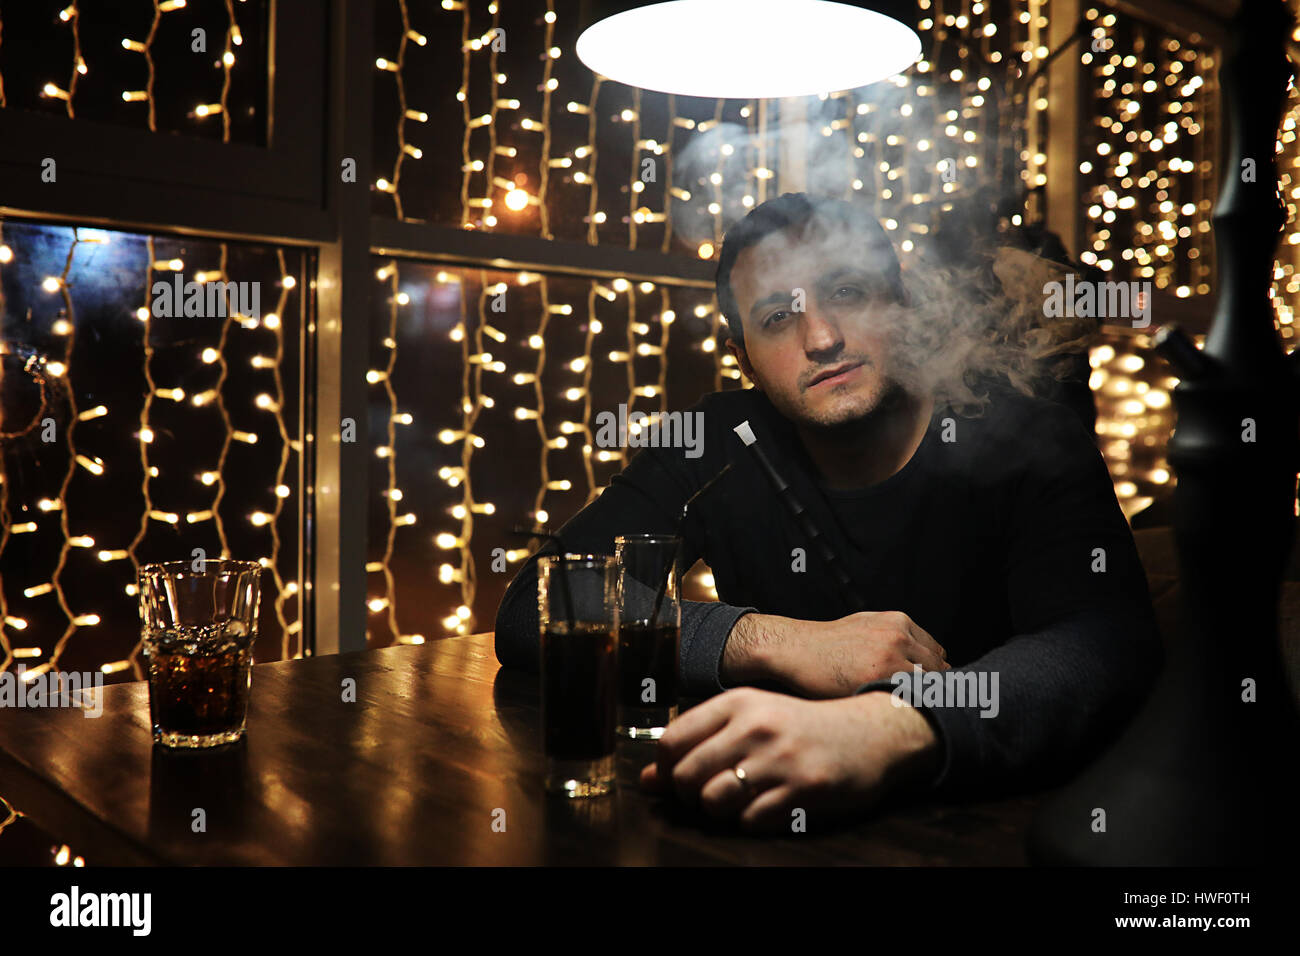 man holding hookah pipe and smoking in a night club  - Stock Image